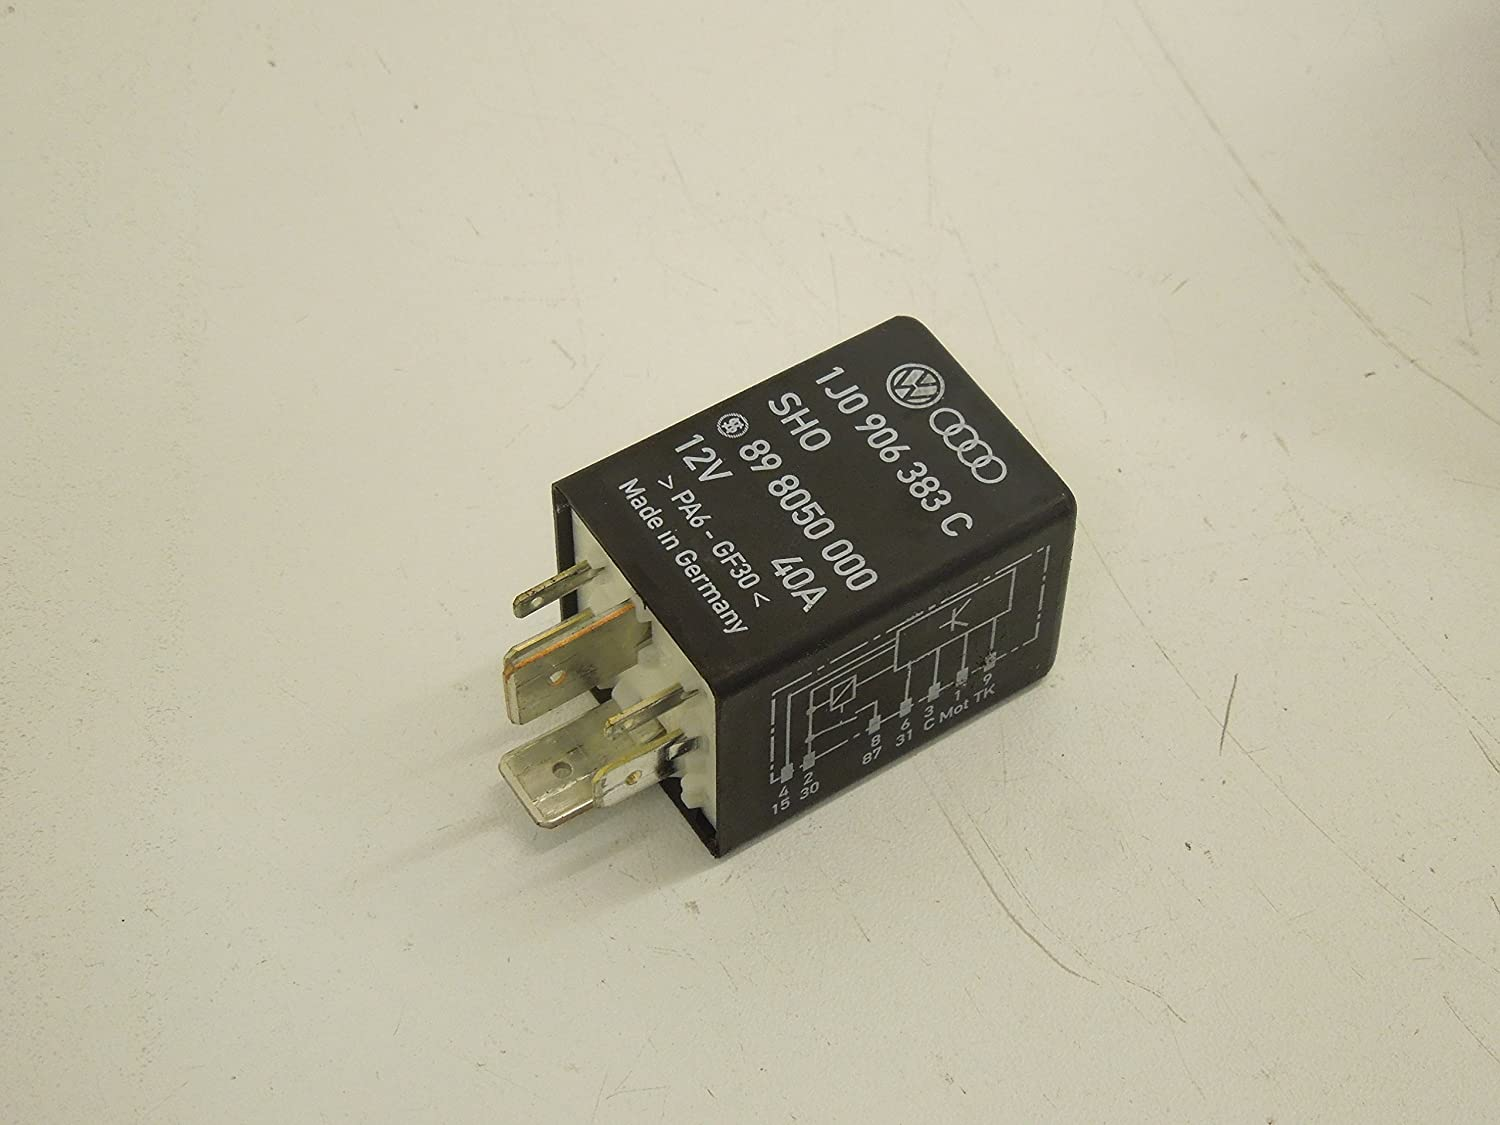 Audi TT 8N Fuel Pump Relay Number 409: Amazon co uk: Car & Motorbike